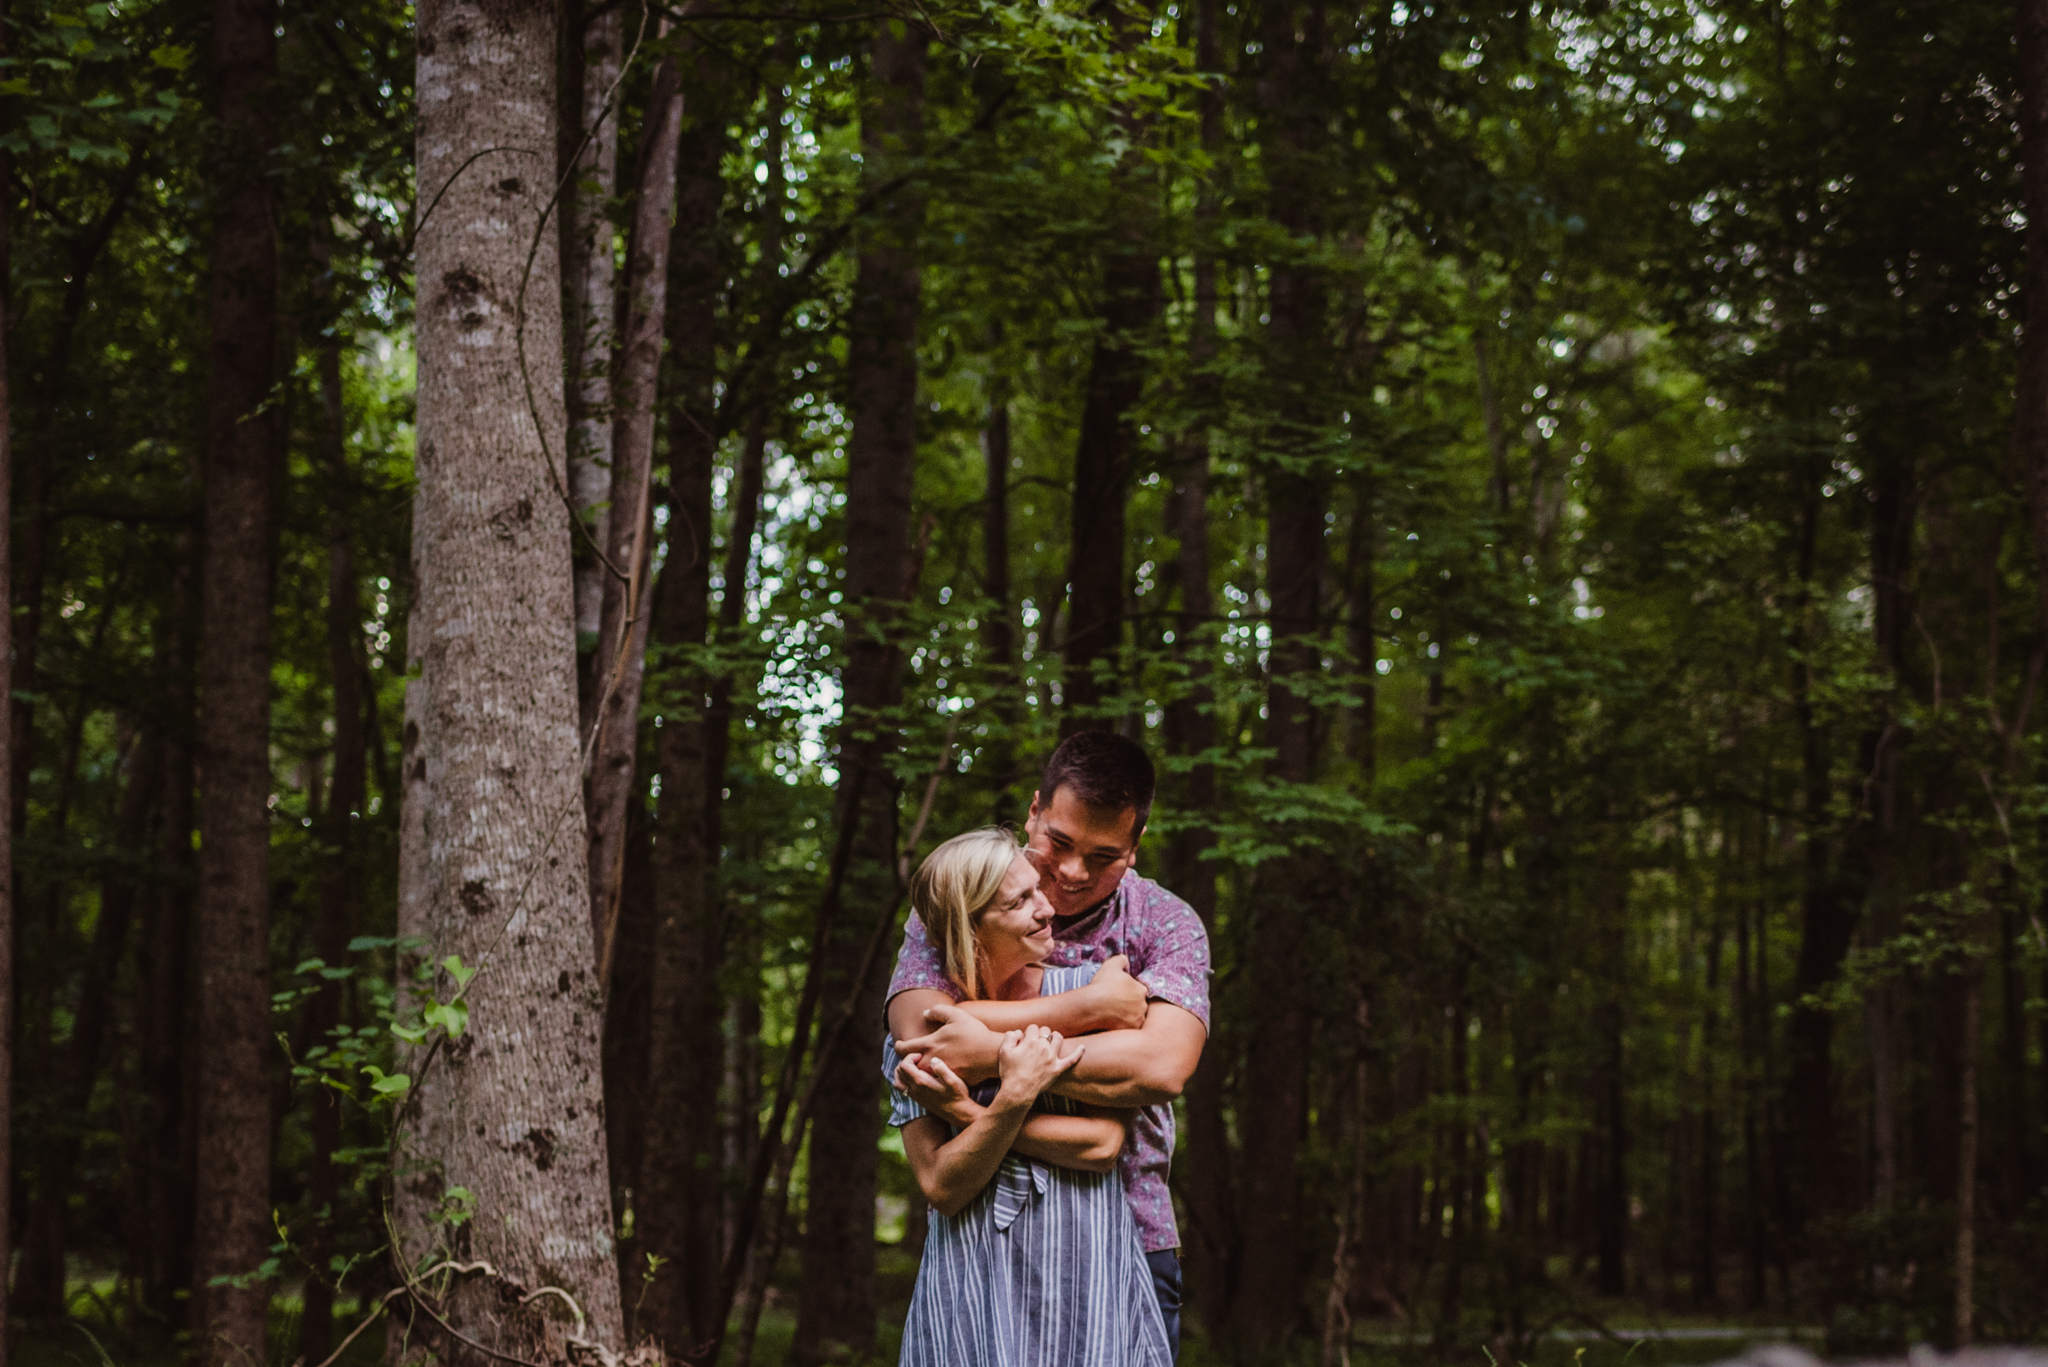 Kristin and Drew hugged each other in the woods during their engagement shoot in Raleigh with Rose Trail Images.